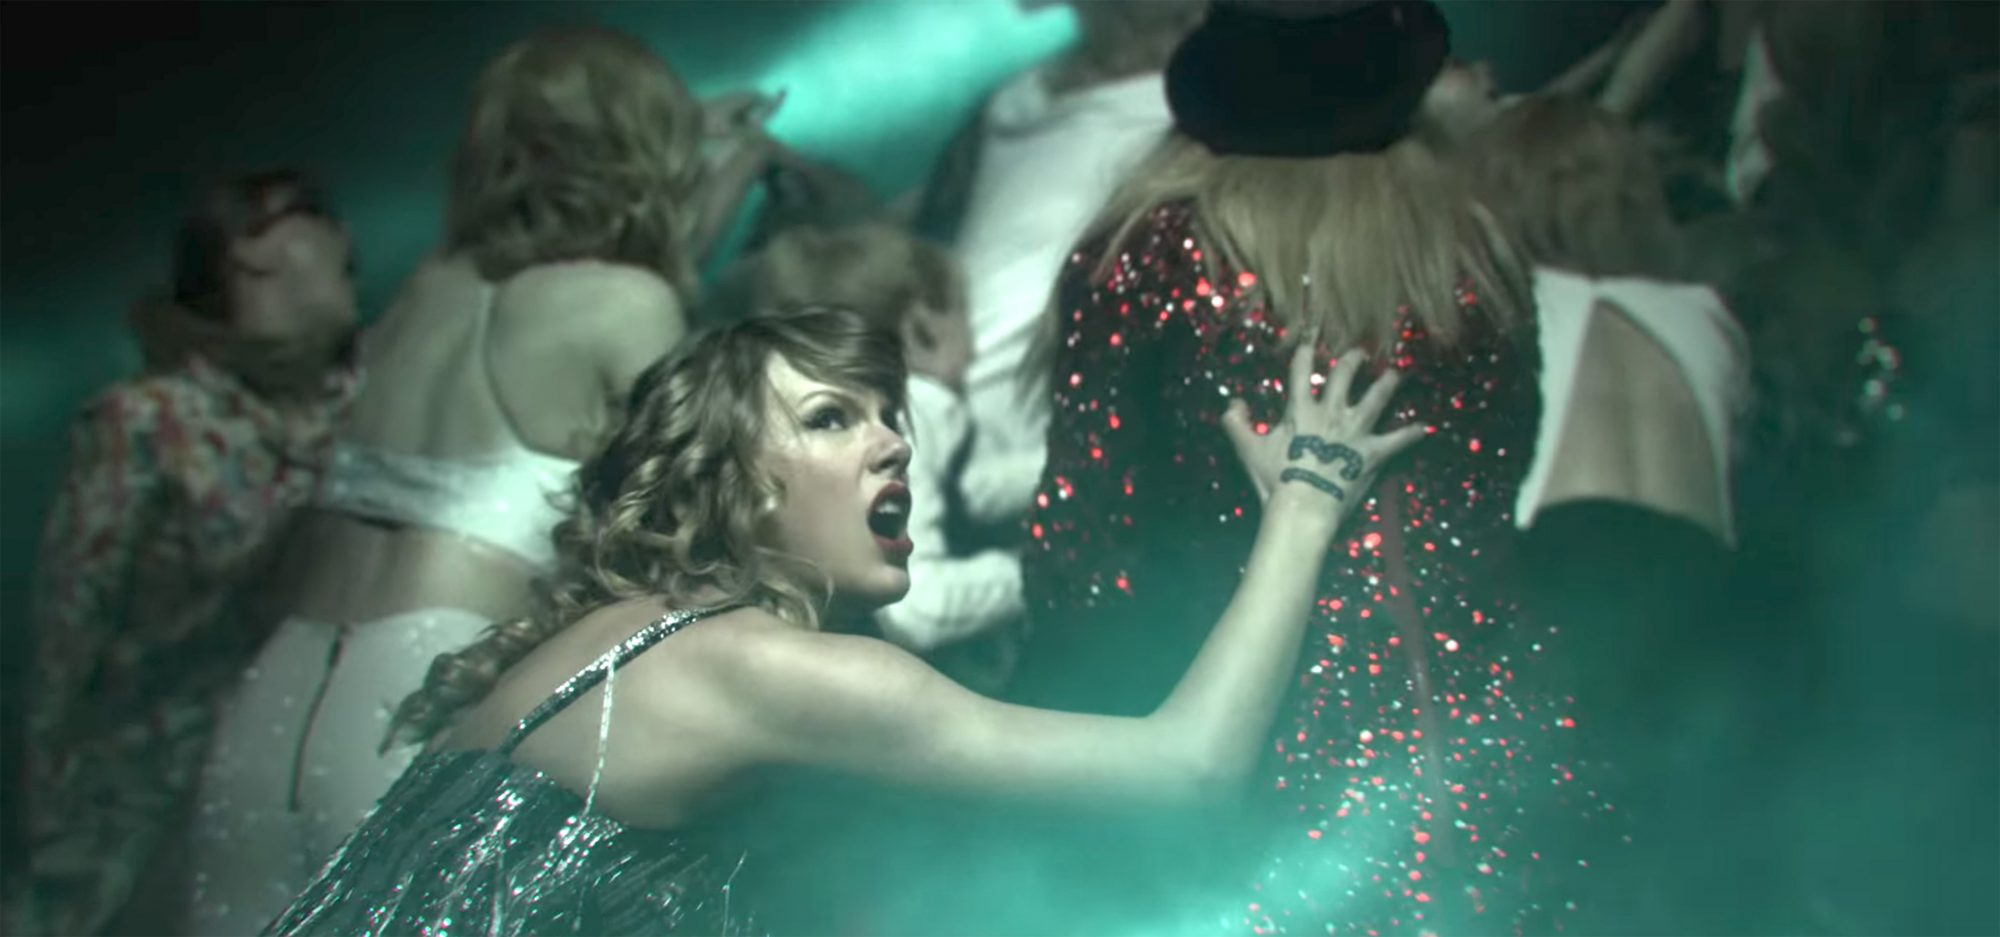 Taylor Swift - Look What You Made Me Do screen grab